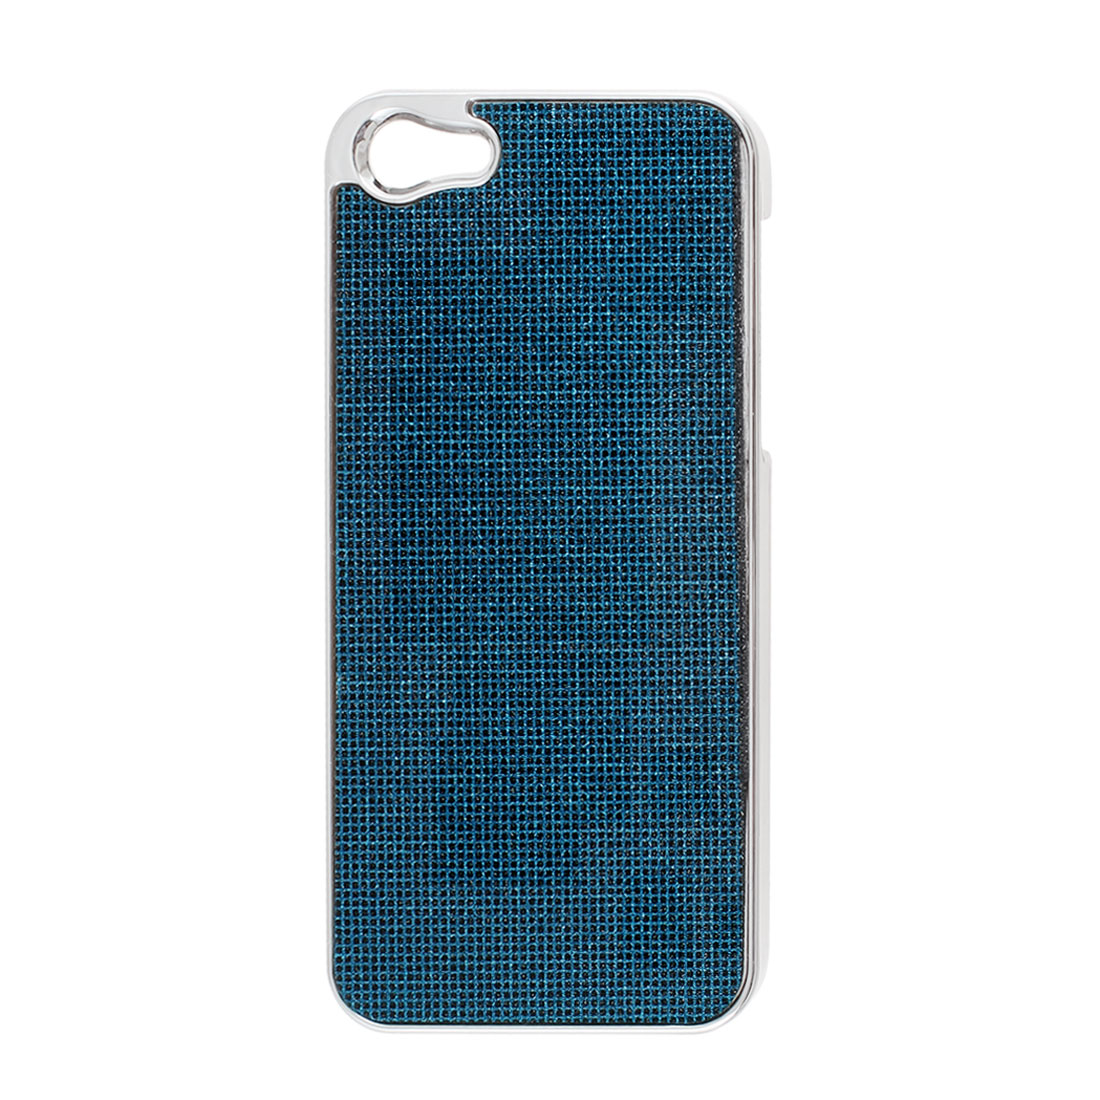 Teal Blue Bling Glittery Hard Plastic Back Case Cover for iPhone 5 5G